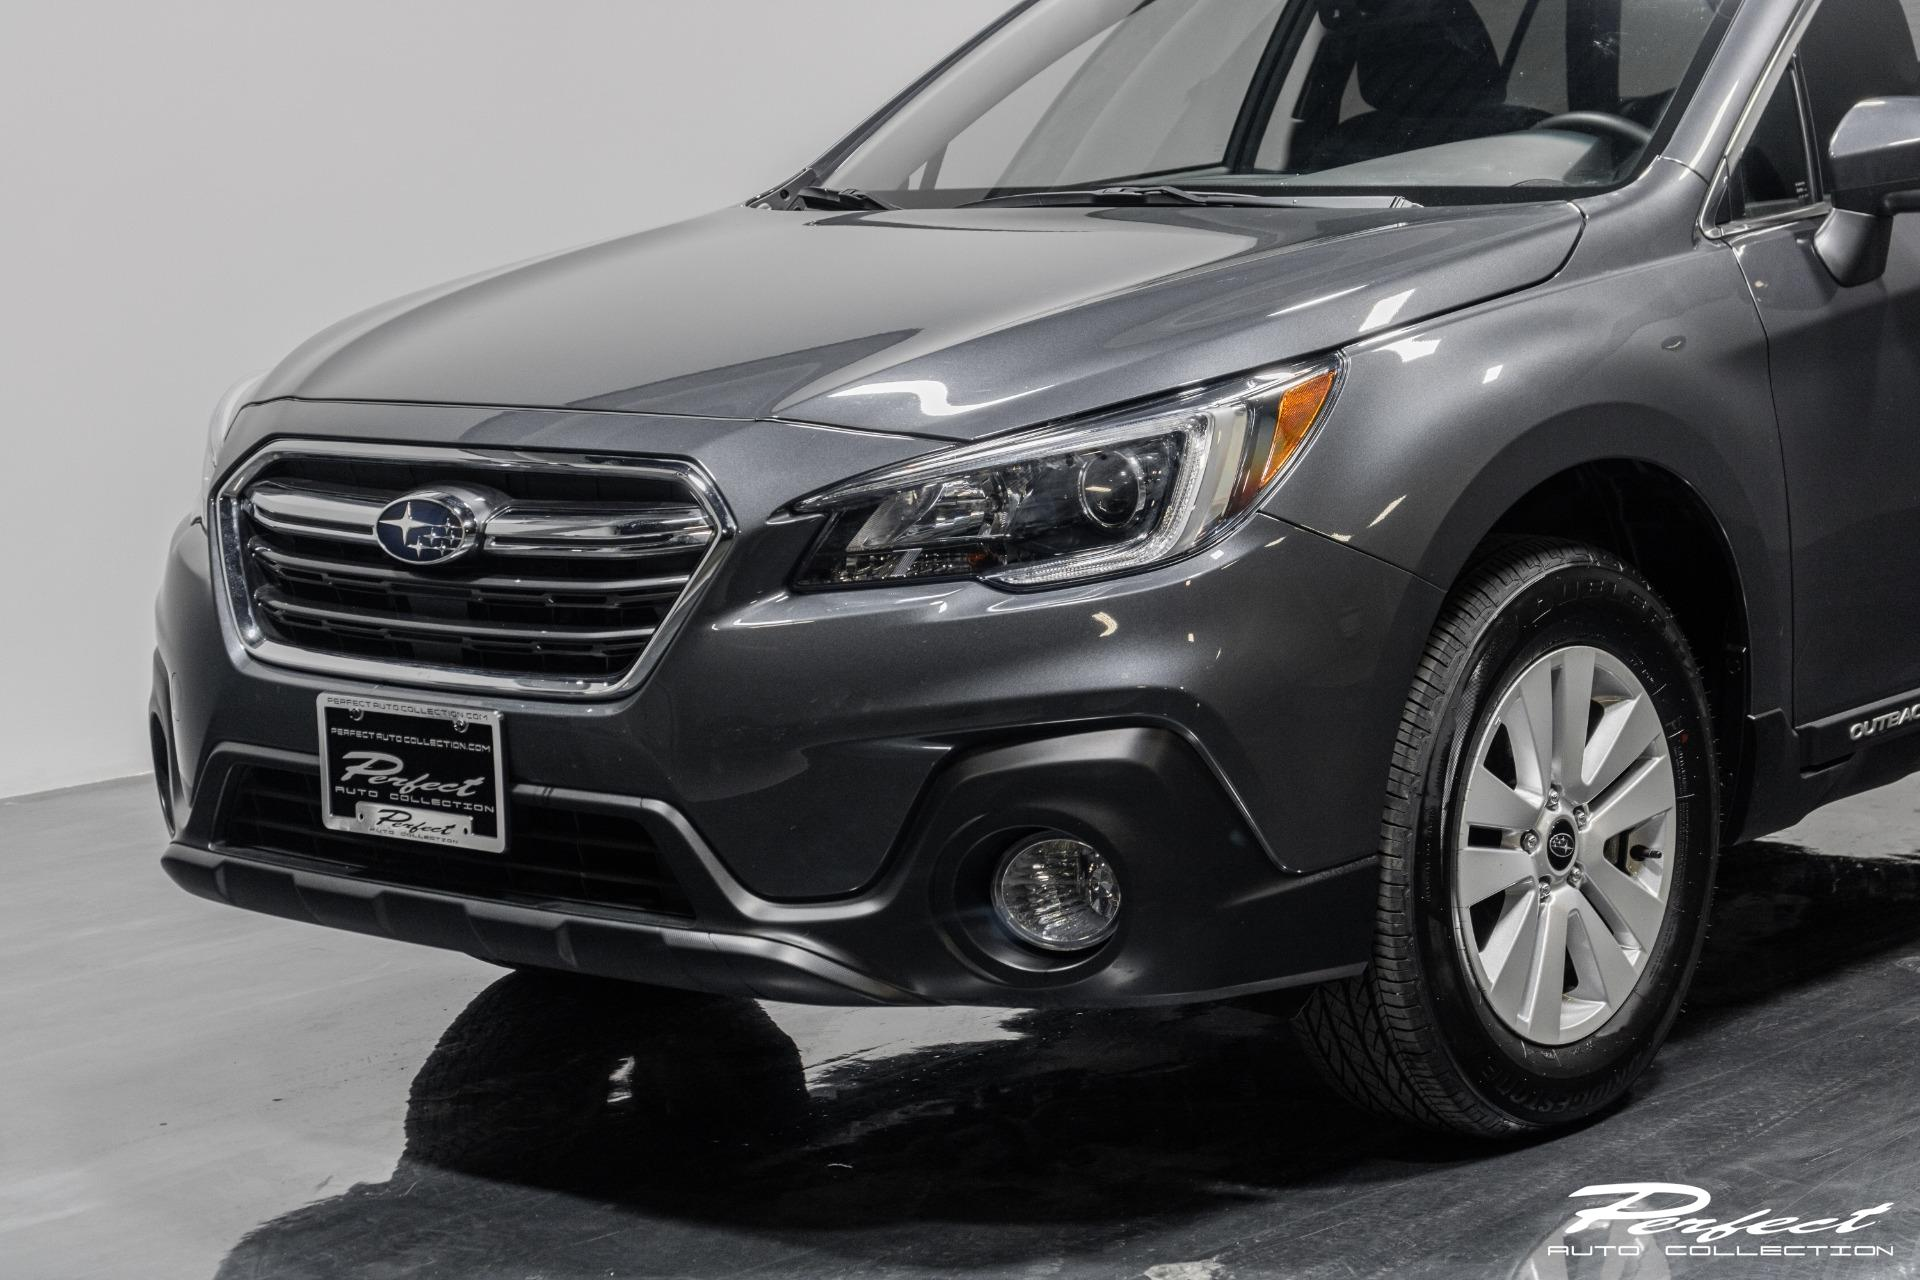 Used 2019 Subaru Outback 2.5i Premium Wagon 4D for sale Sold at Perfect Auto Collection in Akron OH 44310 3